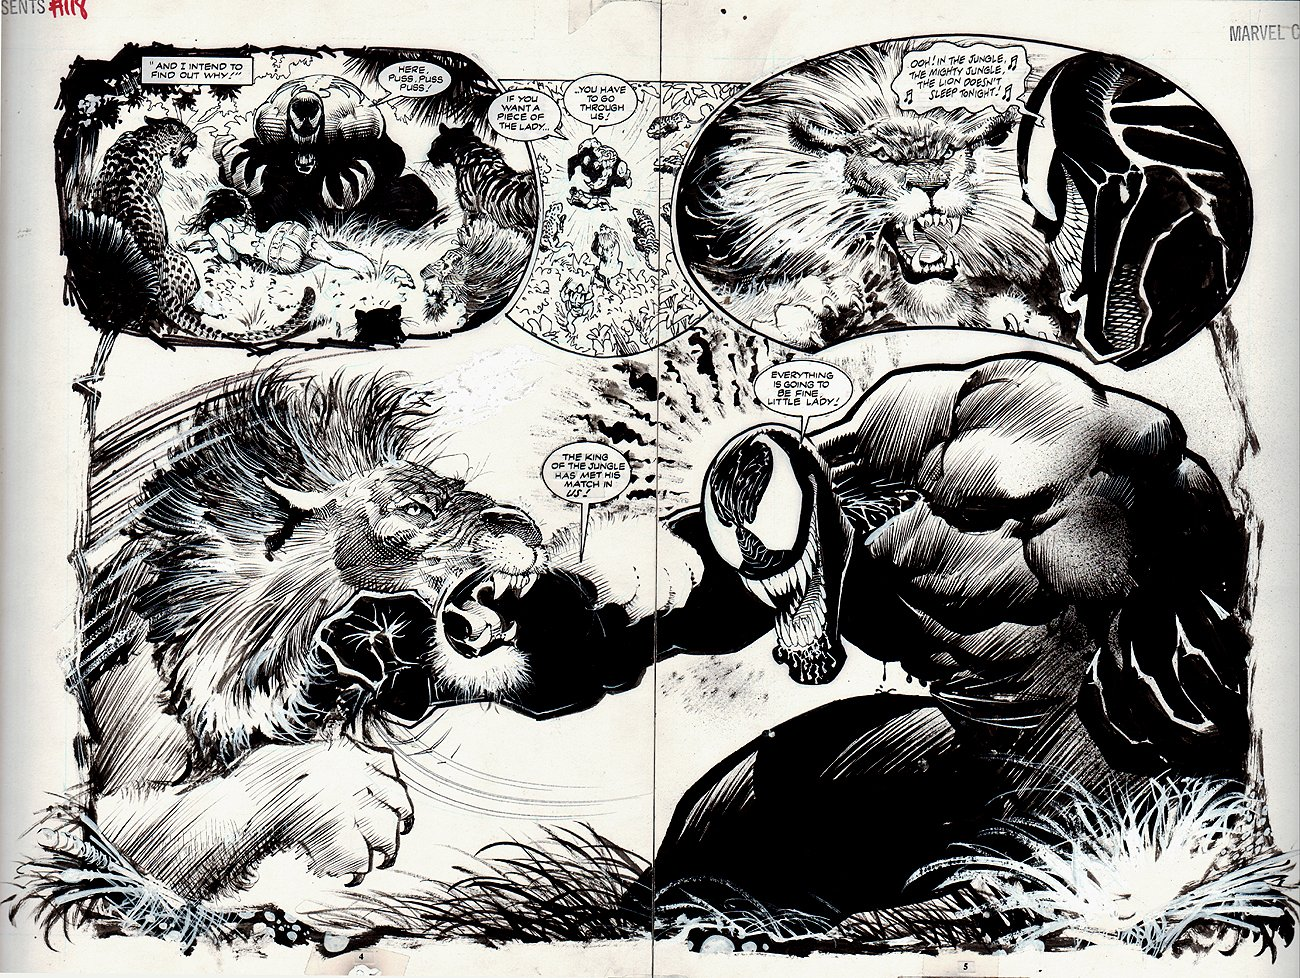 Double Page Splash – Comprises of two pages where the character and background fills both pages. An awesome Venom double-page splash by artist Sam Keith.